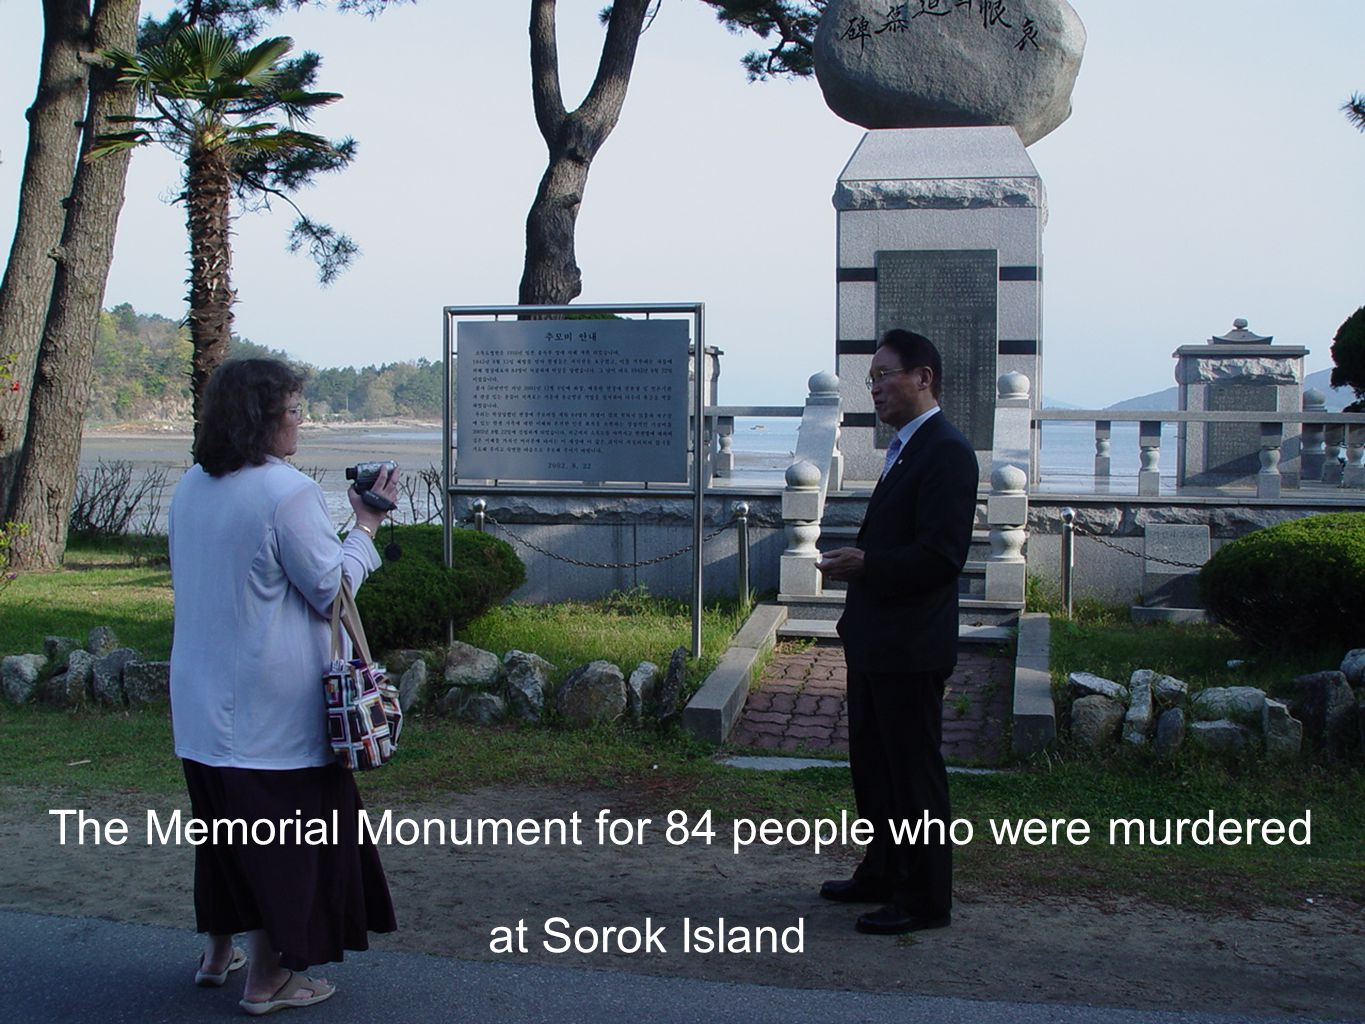 The Memorial Monument for 84 people who were murdered at Sorok Island